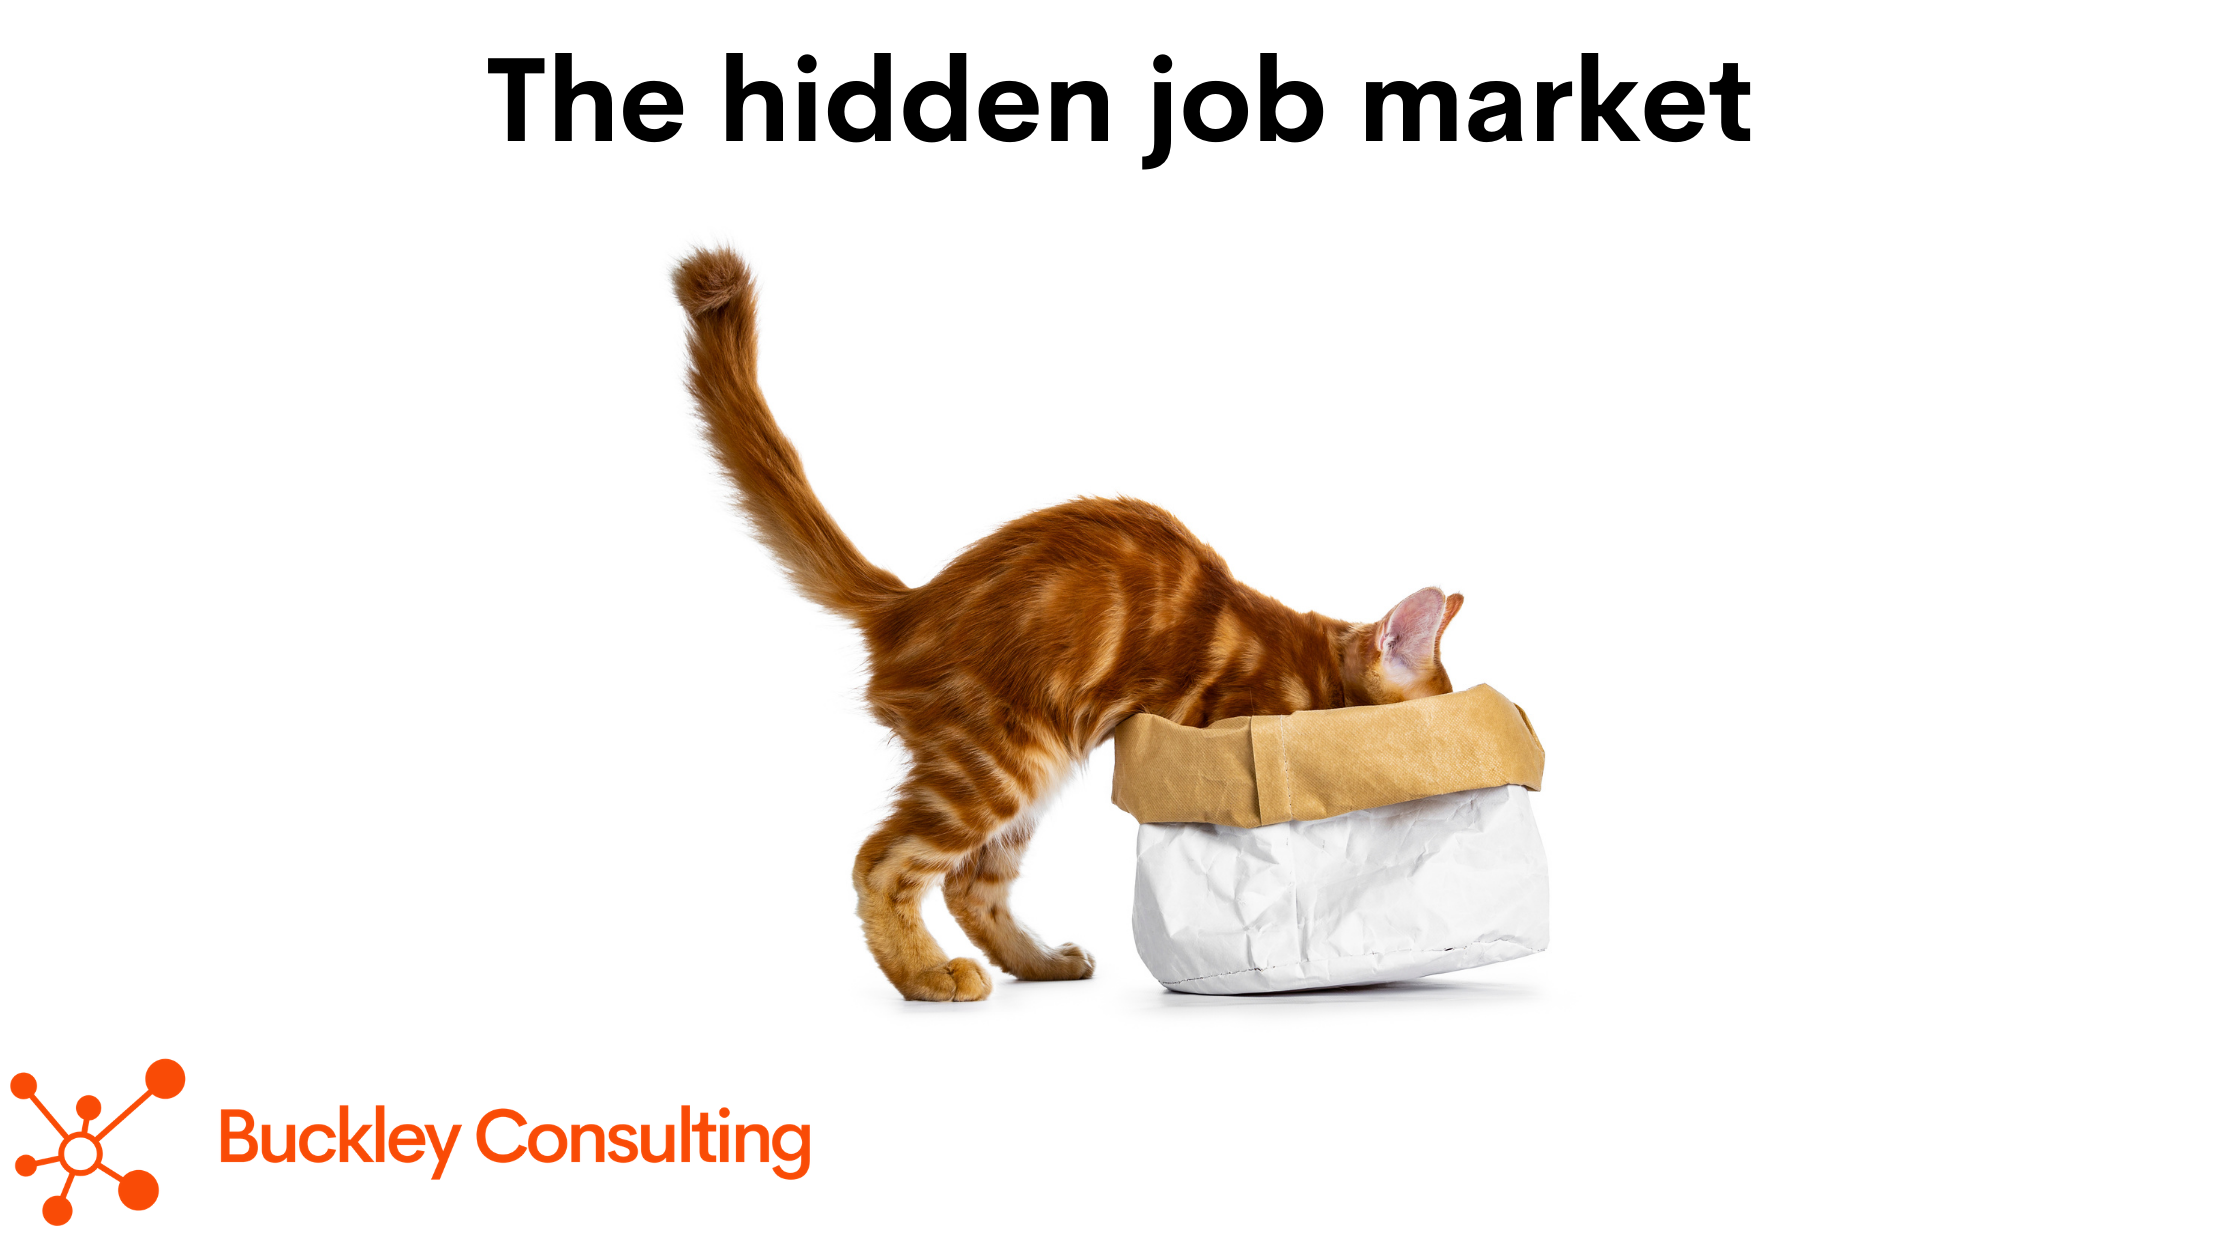 The hidden job market